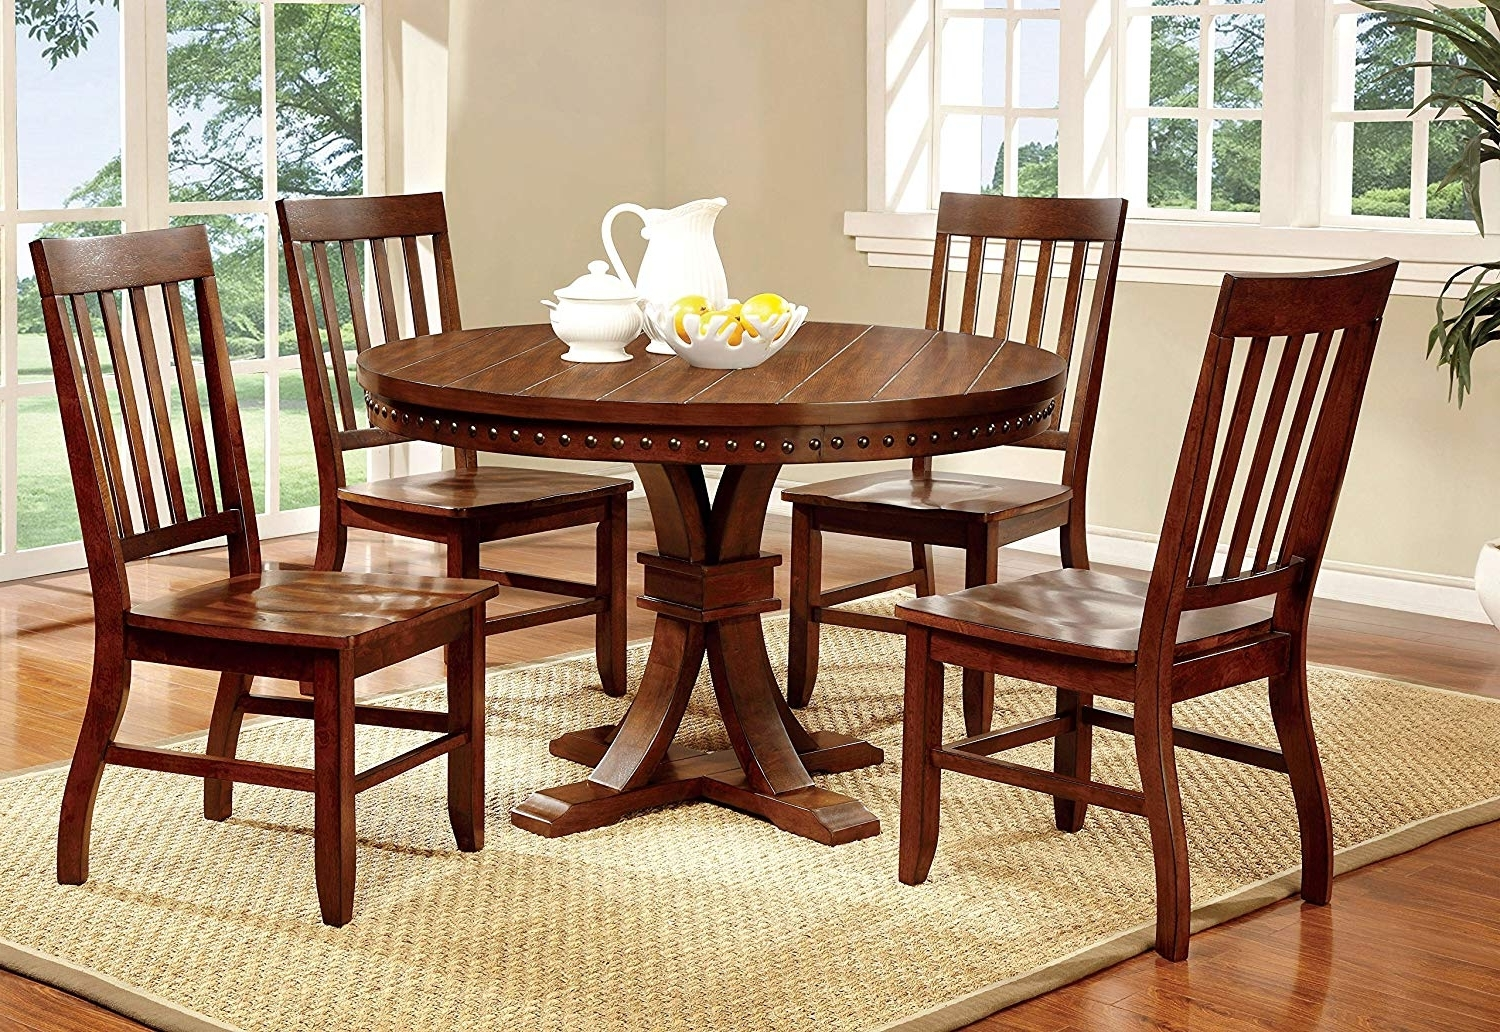 Amazon – Furniture Of America Castile 5 Piece Transitional Round Pertaining To Most Recently Released Dark Wood Dining Tables (Gallery 24 of 25)